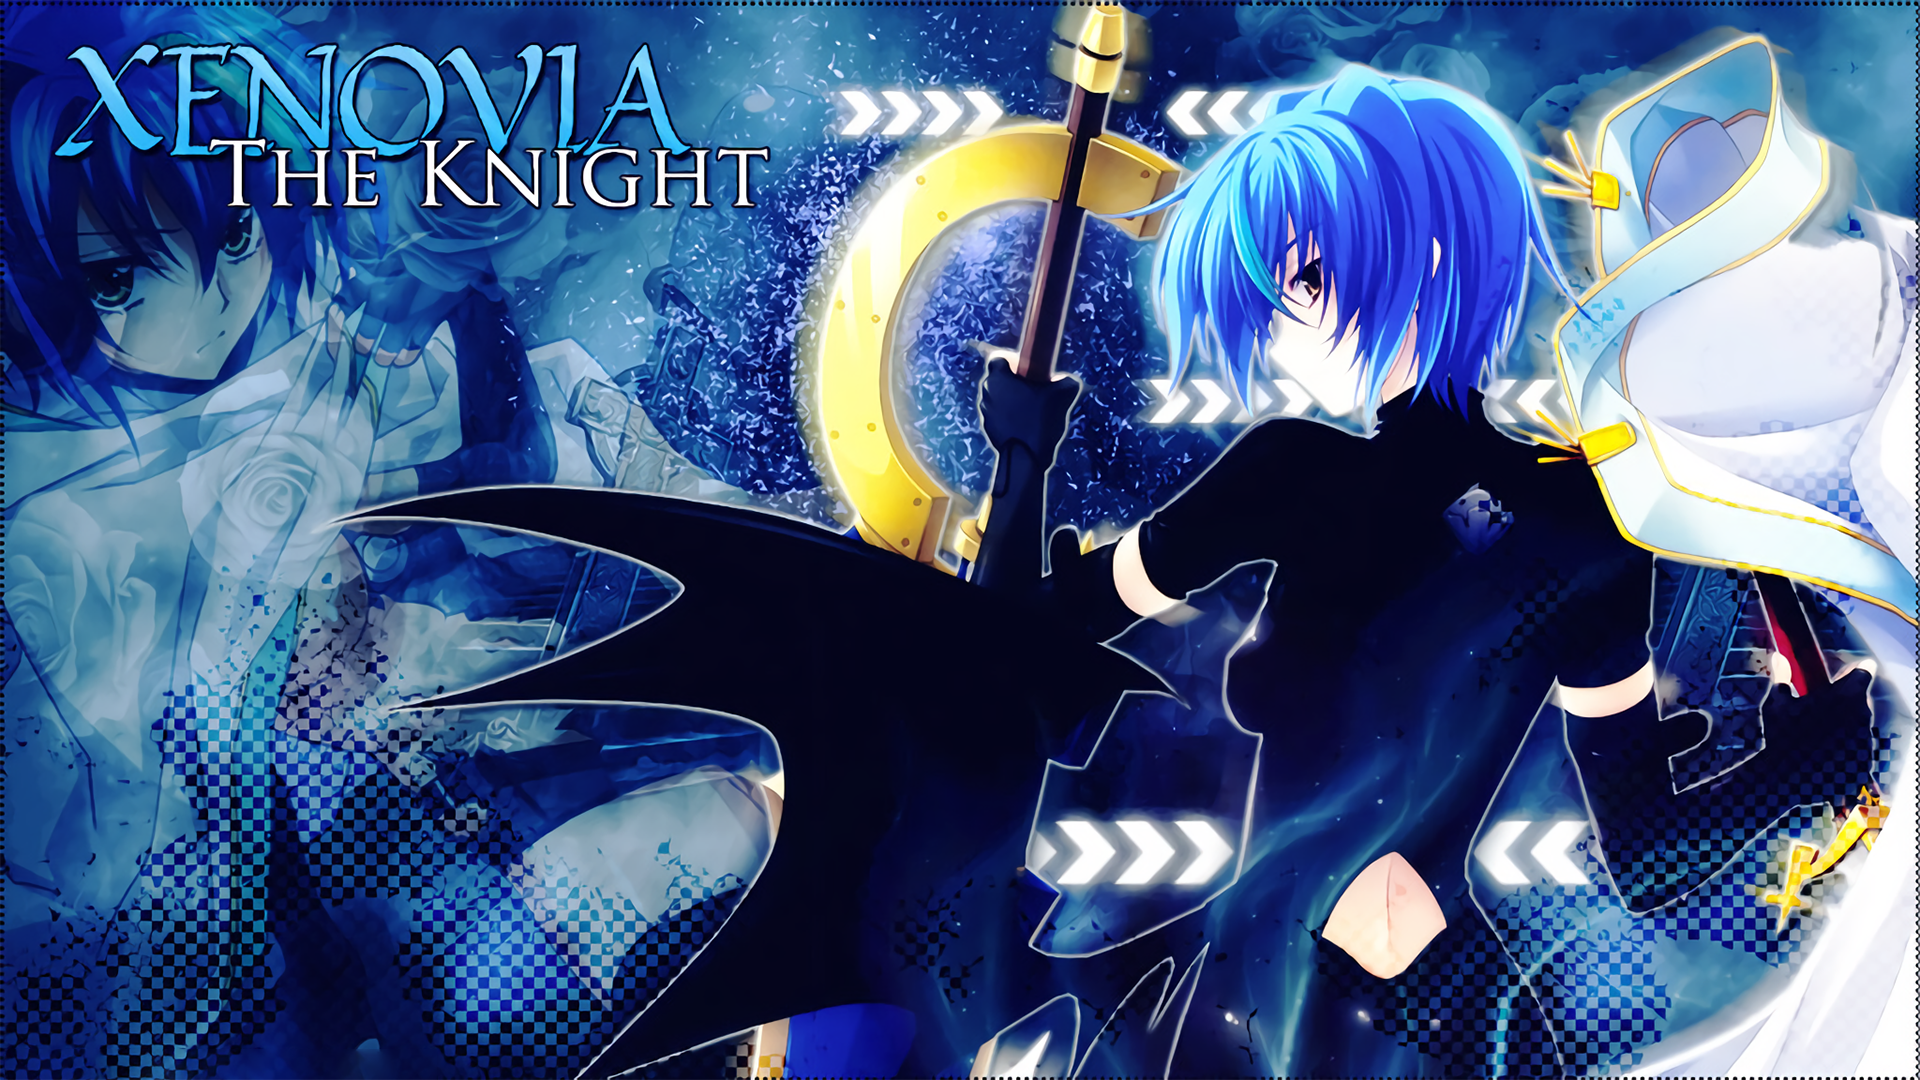 Best 57+ Xenovia Wallpapers on HipWallpapers